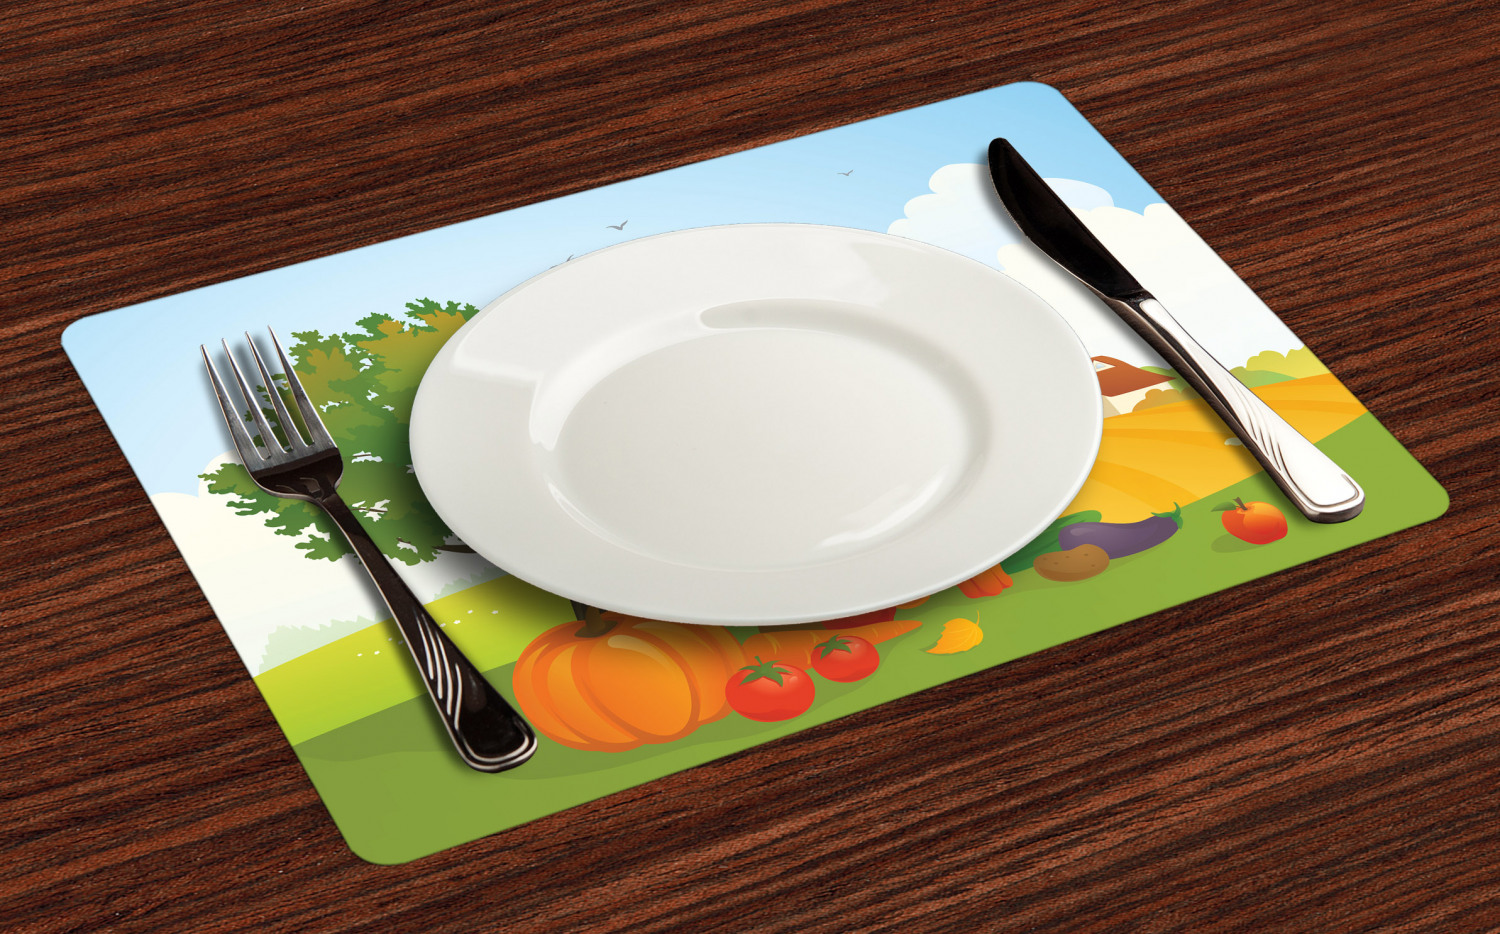 Ambesonne-Fabric-Place-Mats-Set-of-4-Placemats-for-Dining-Room-and-Kitchen-Table thumbnail 193